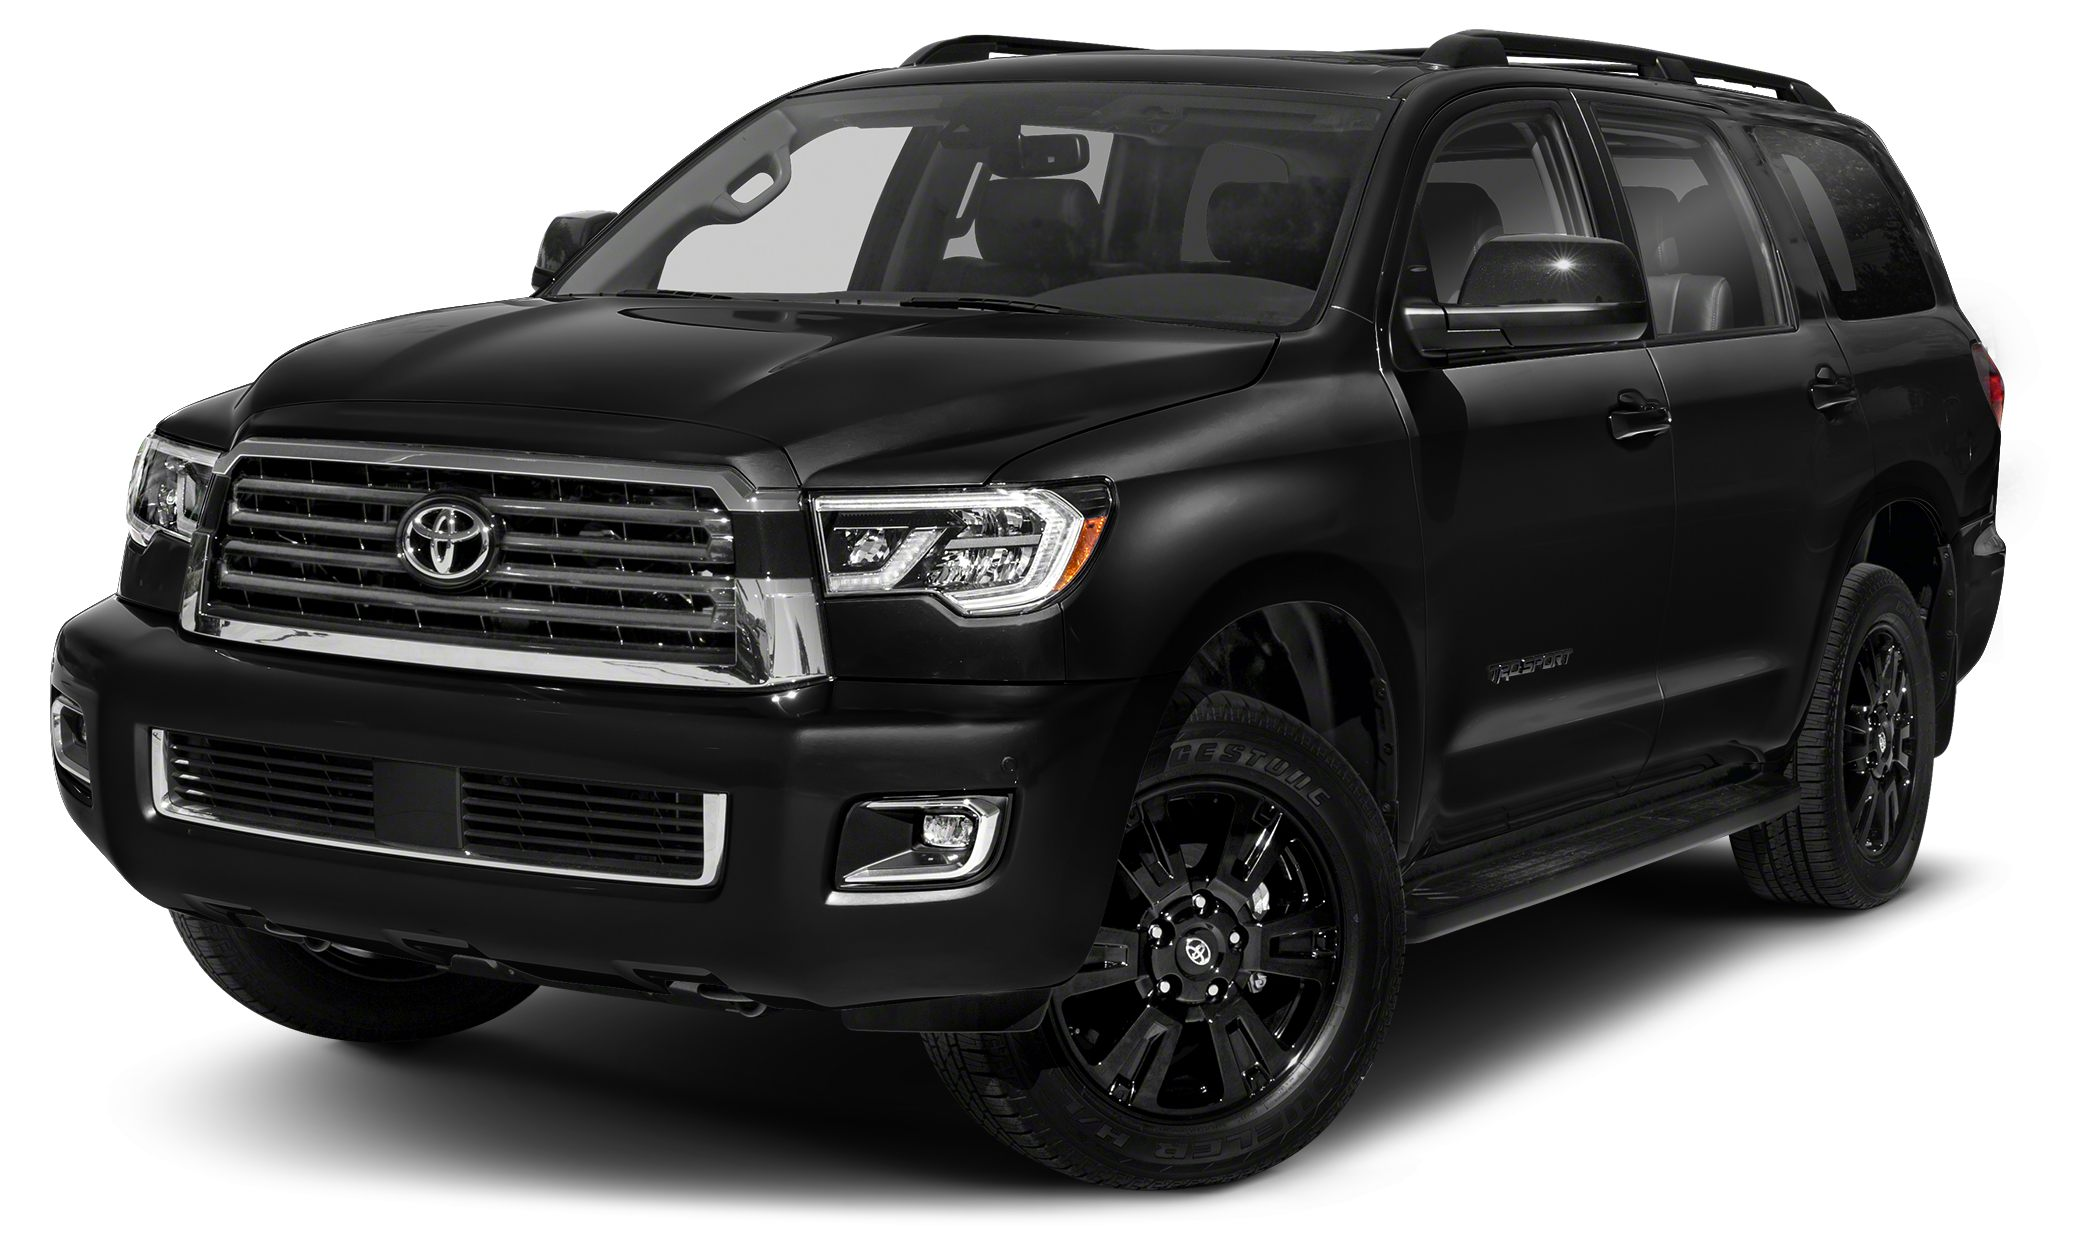 2018 Toyota Sequoia TRD Sport Boasts 17 Highway MPG and 13 City MPG This Toyota Sequoia delivers